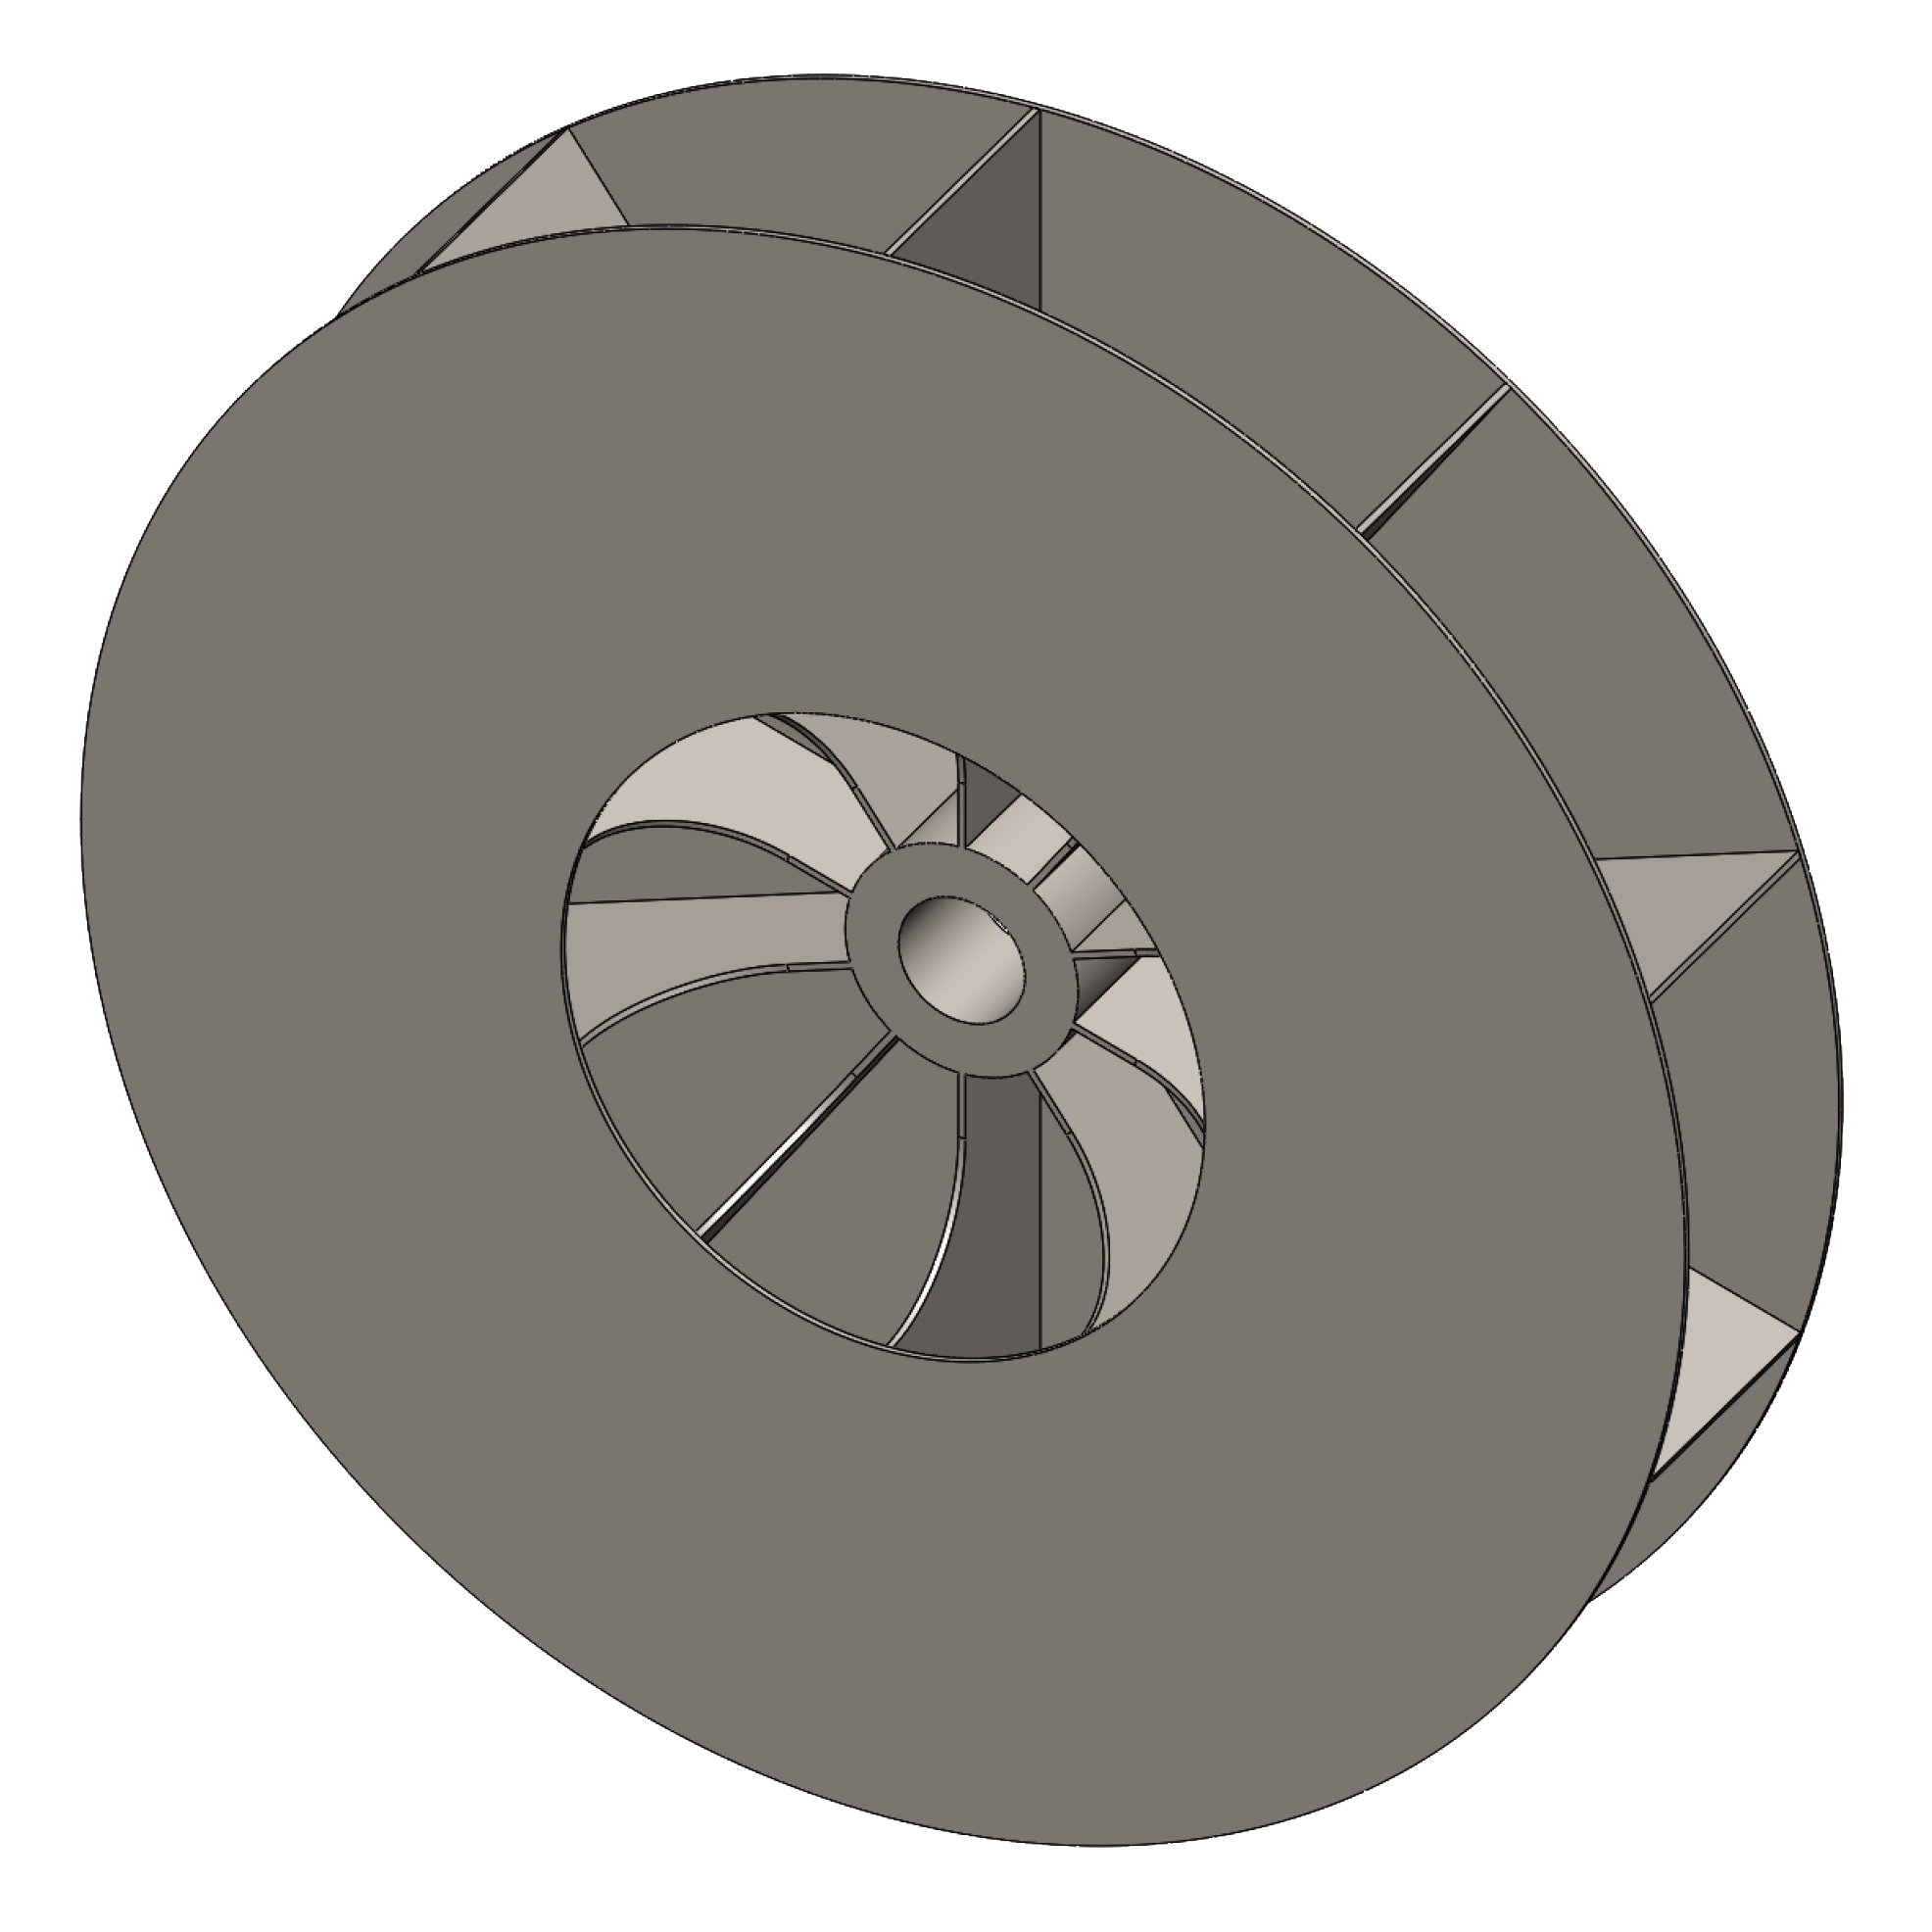 Radial High Pressure Blower : High pressure blower radial shrouded airpro fan